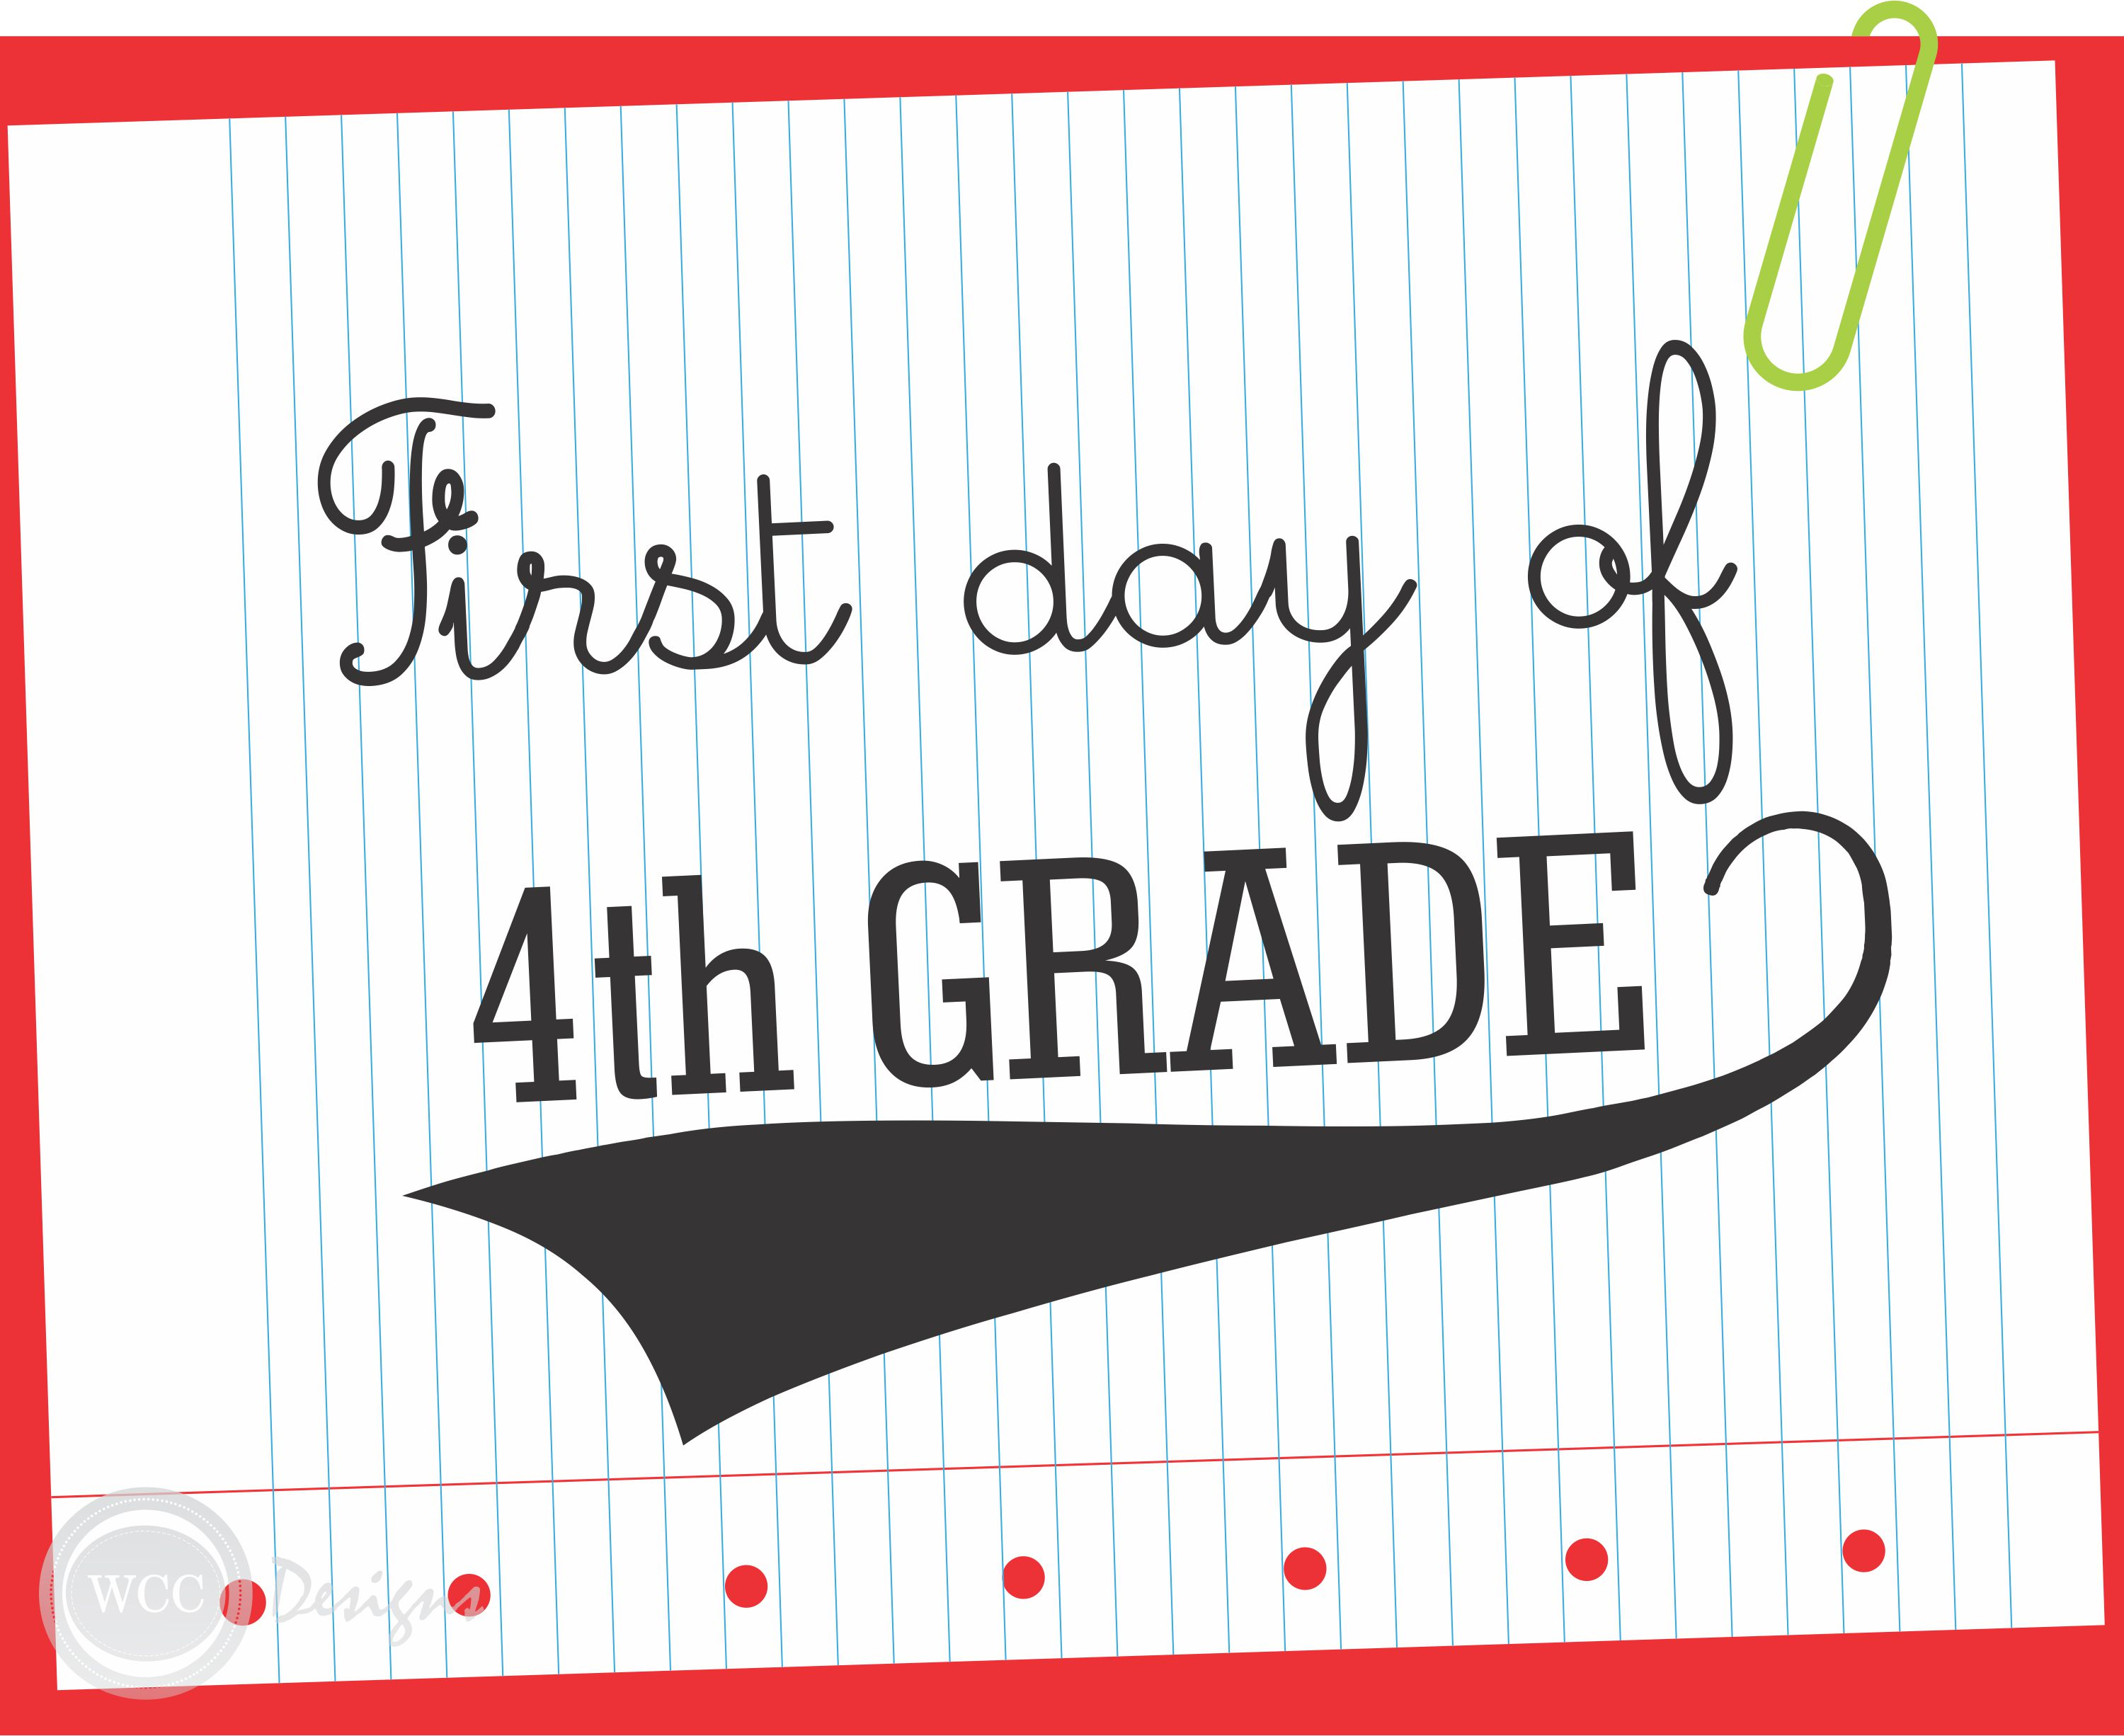 image relating to First Day of 3rd Grade Sign Printable named Cost-free Initially Working day of University Printable Indications towards WCC Patterns